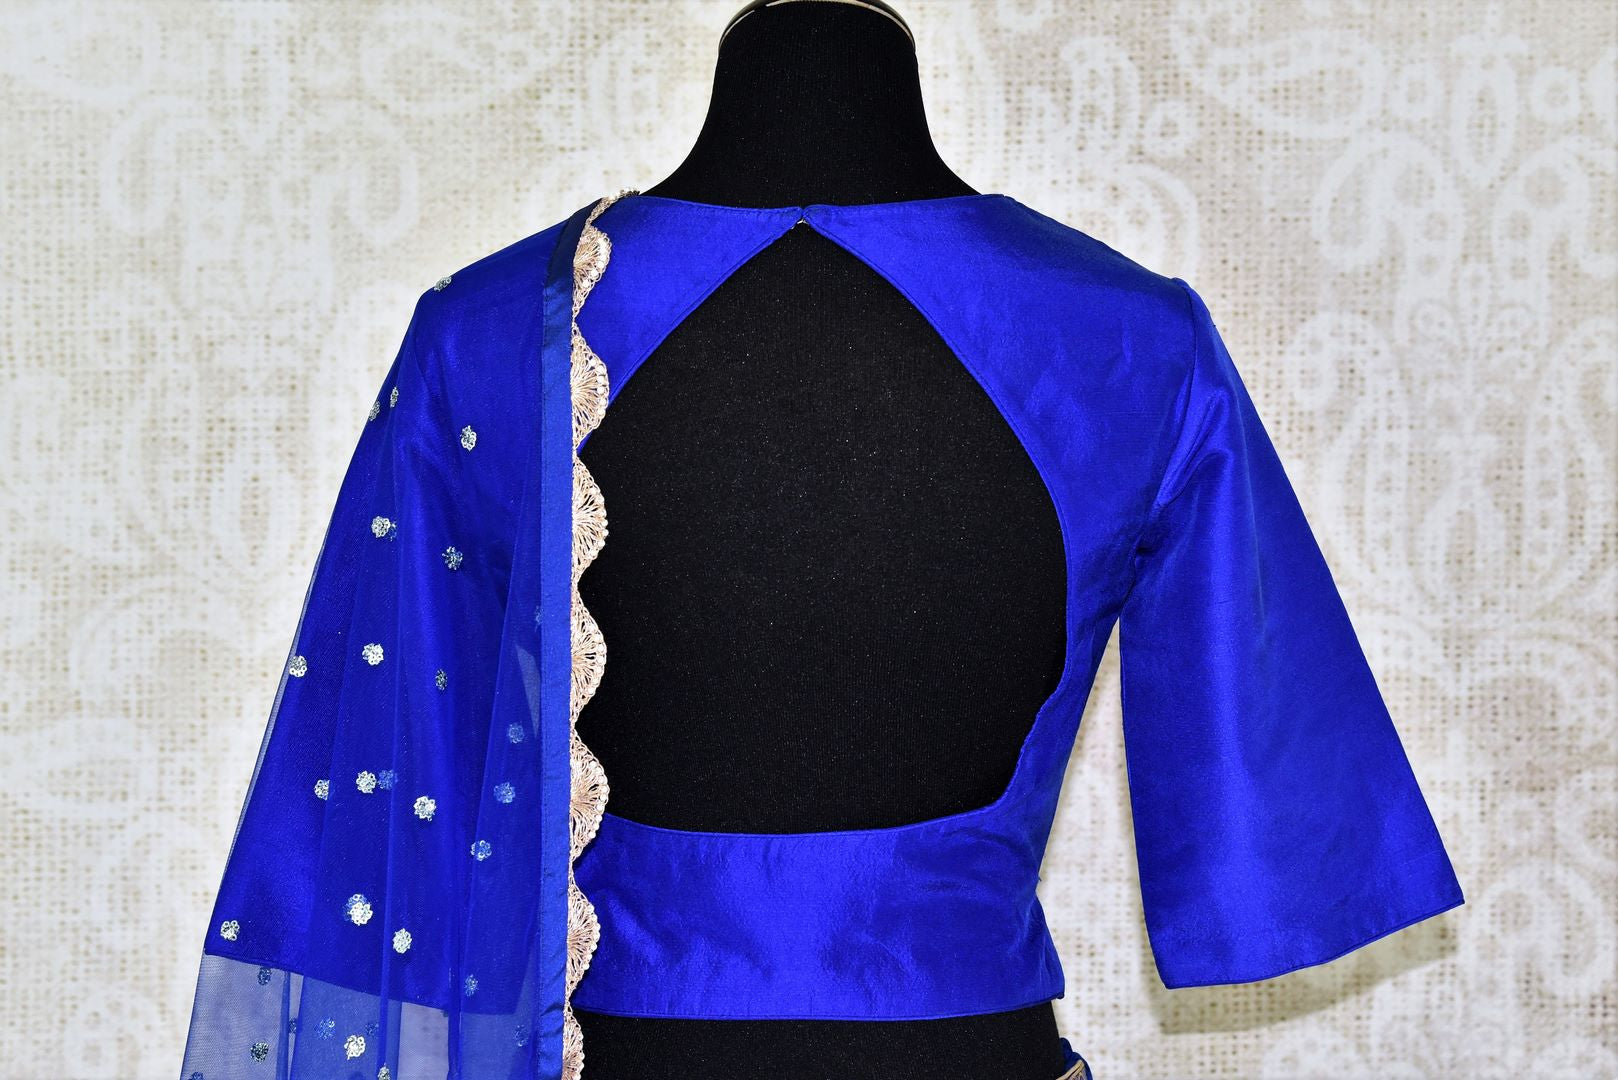 Buy ethnic blue handloom Banarasi lehenga online in USA with dupatta. Make every occasion special with beautiful Indian dresses, wedding lehengas from Pure Elegance Indian fashion store in USA. You can also browse through our website and shop online.-back